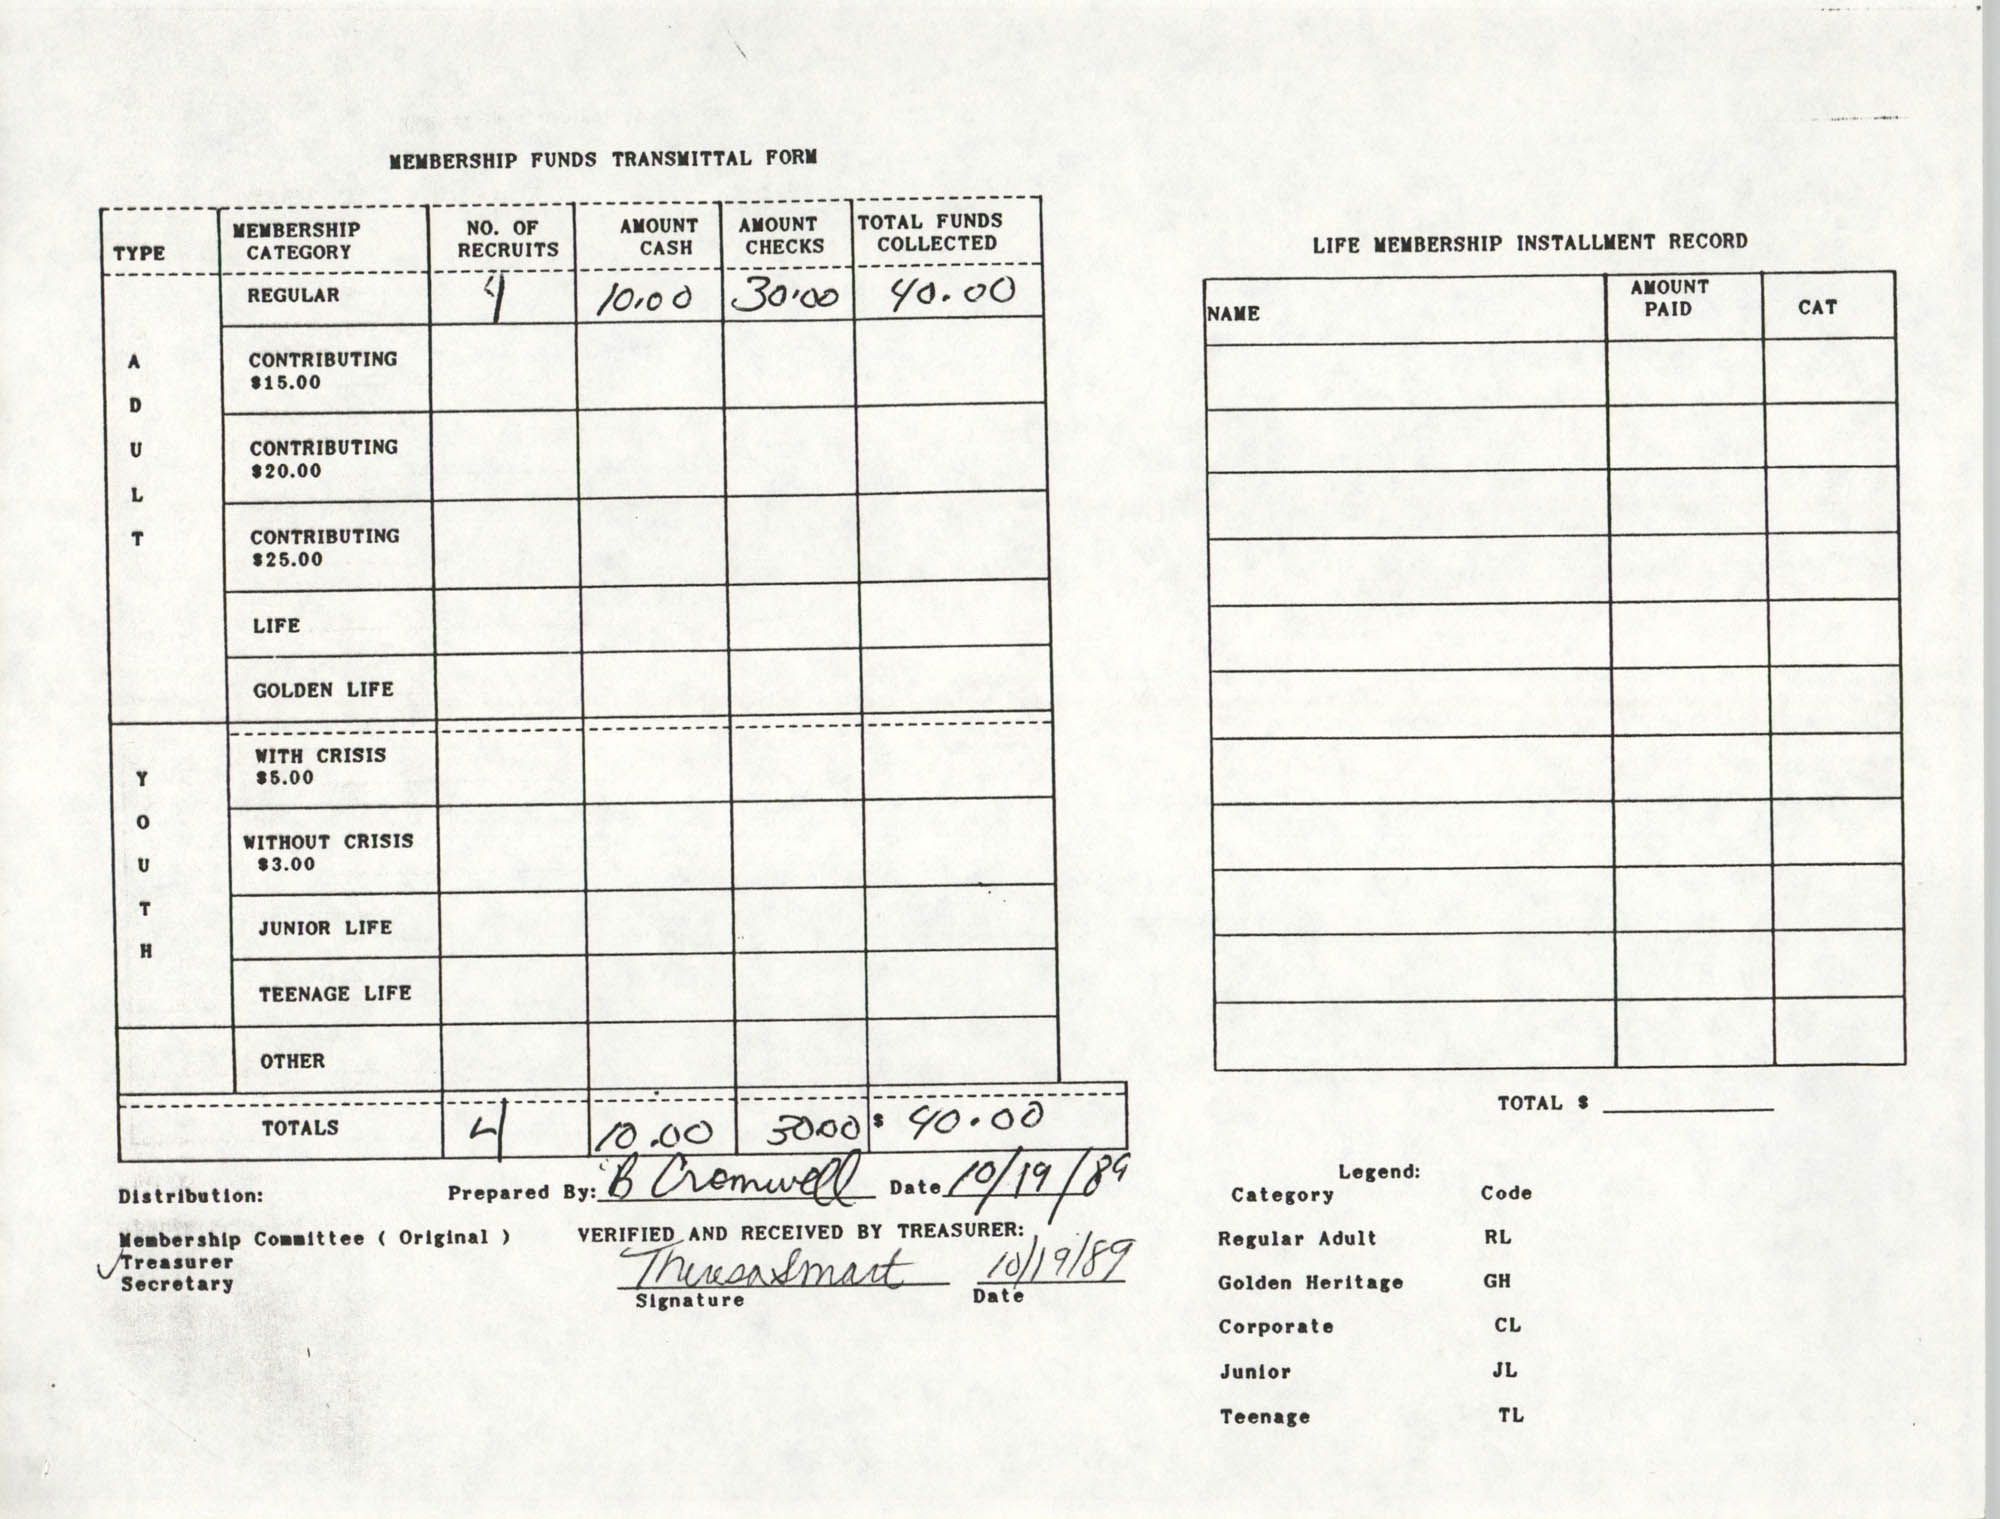 Charleston Branch of the NAACP Funds Transmittal Forms, October 1989, Page 6